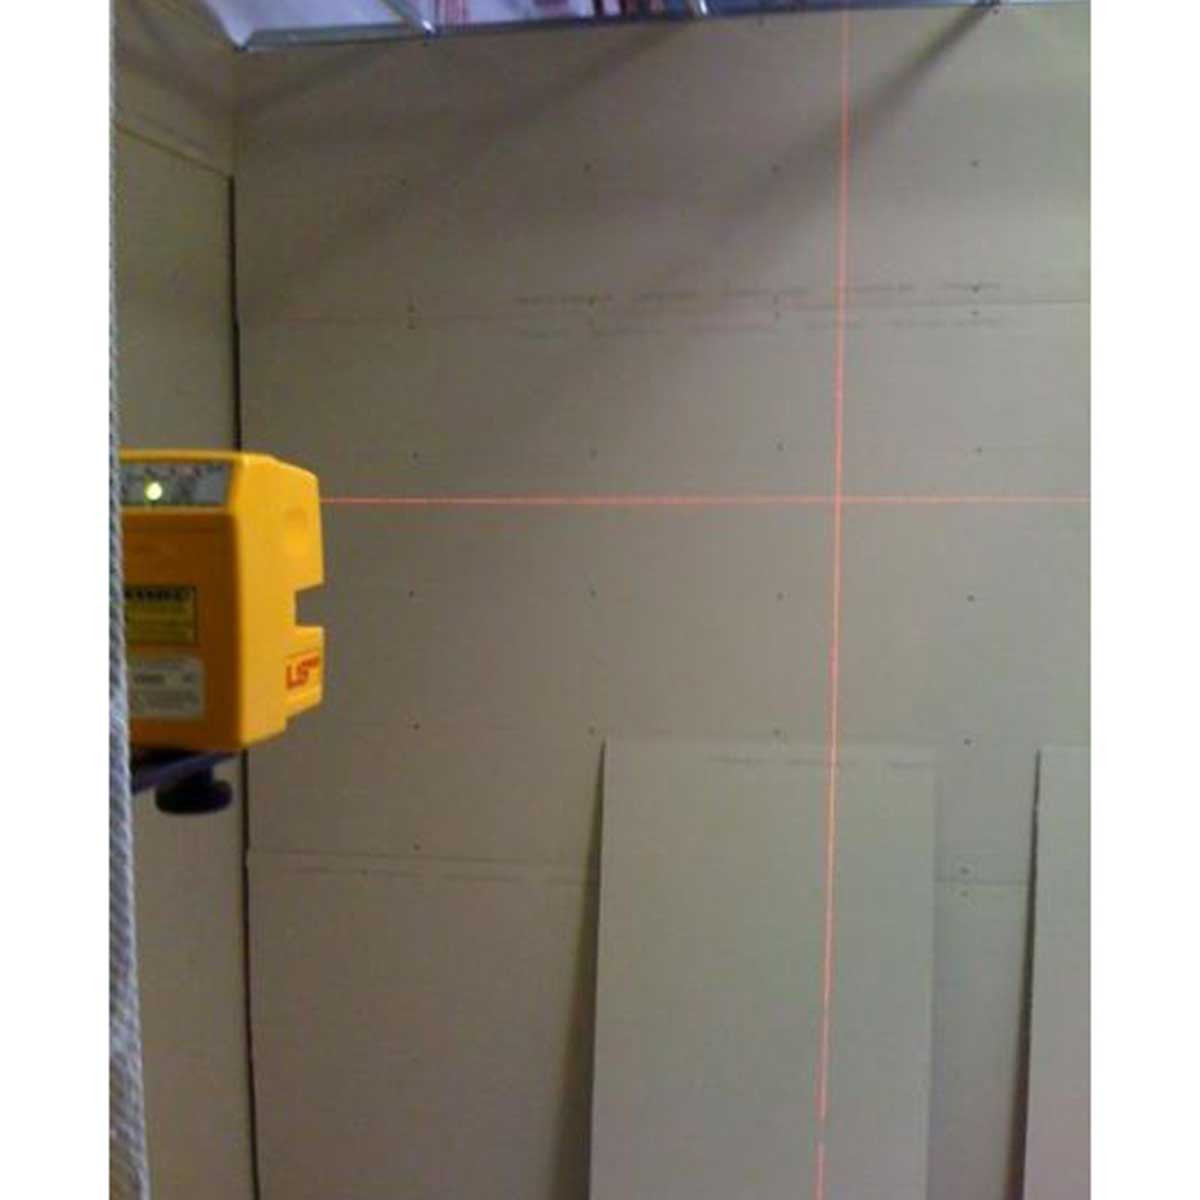 pacific laser tool 180